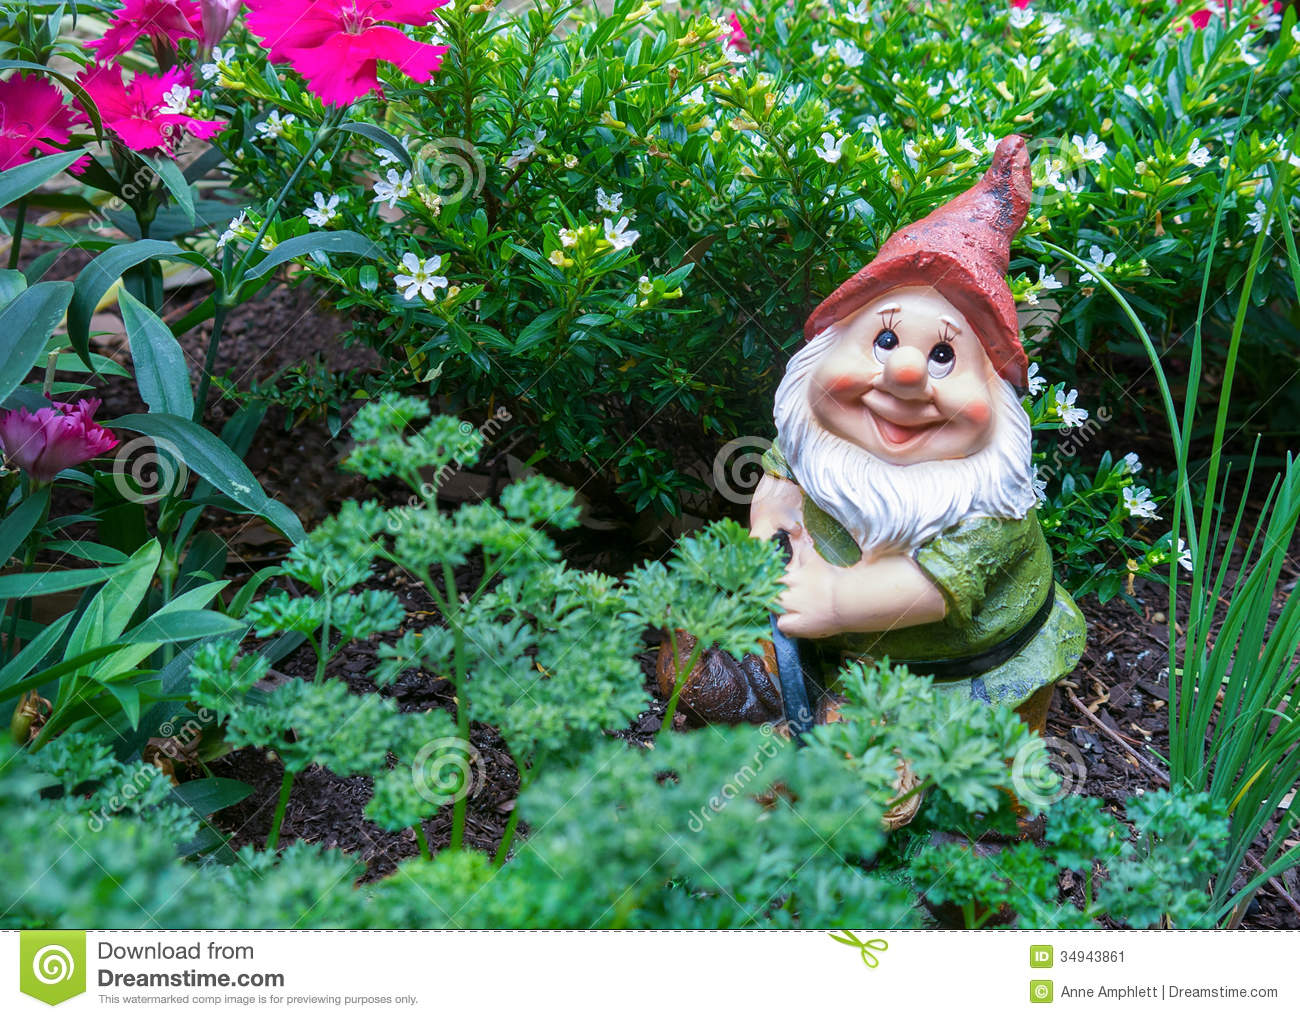 Gnome In Garden: Gnome In Garden Stock Image. Image Of Life, Novelty, Still